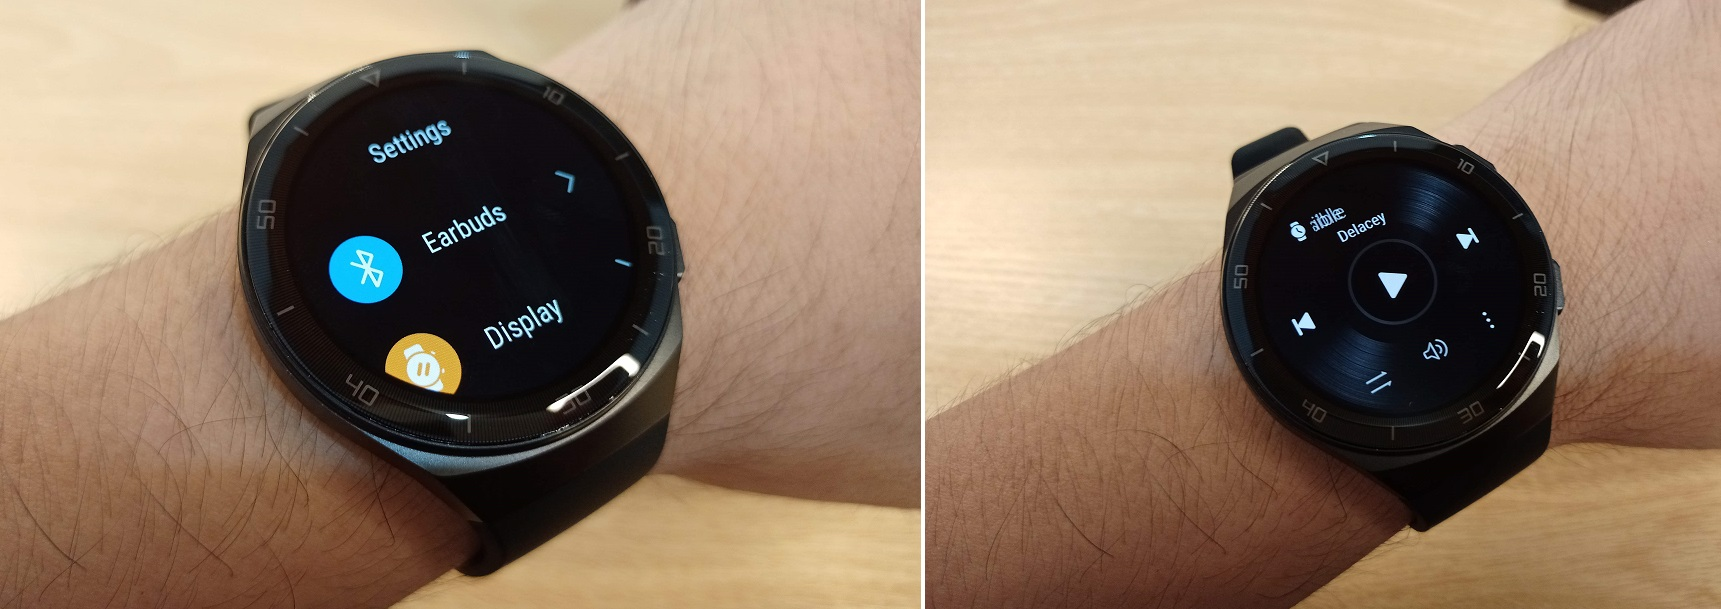 huawei watch gt 2e hands on review